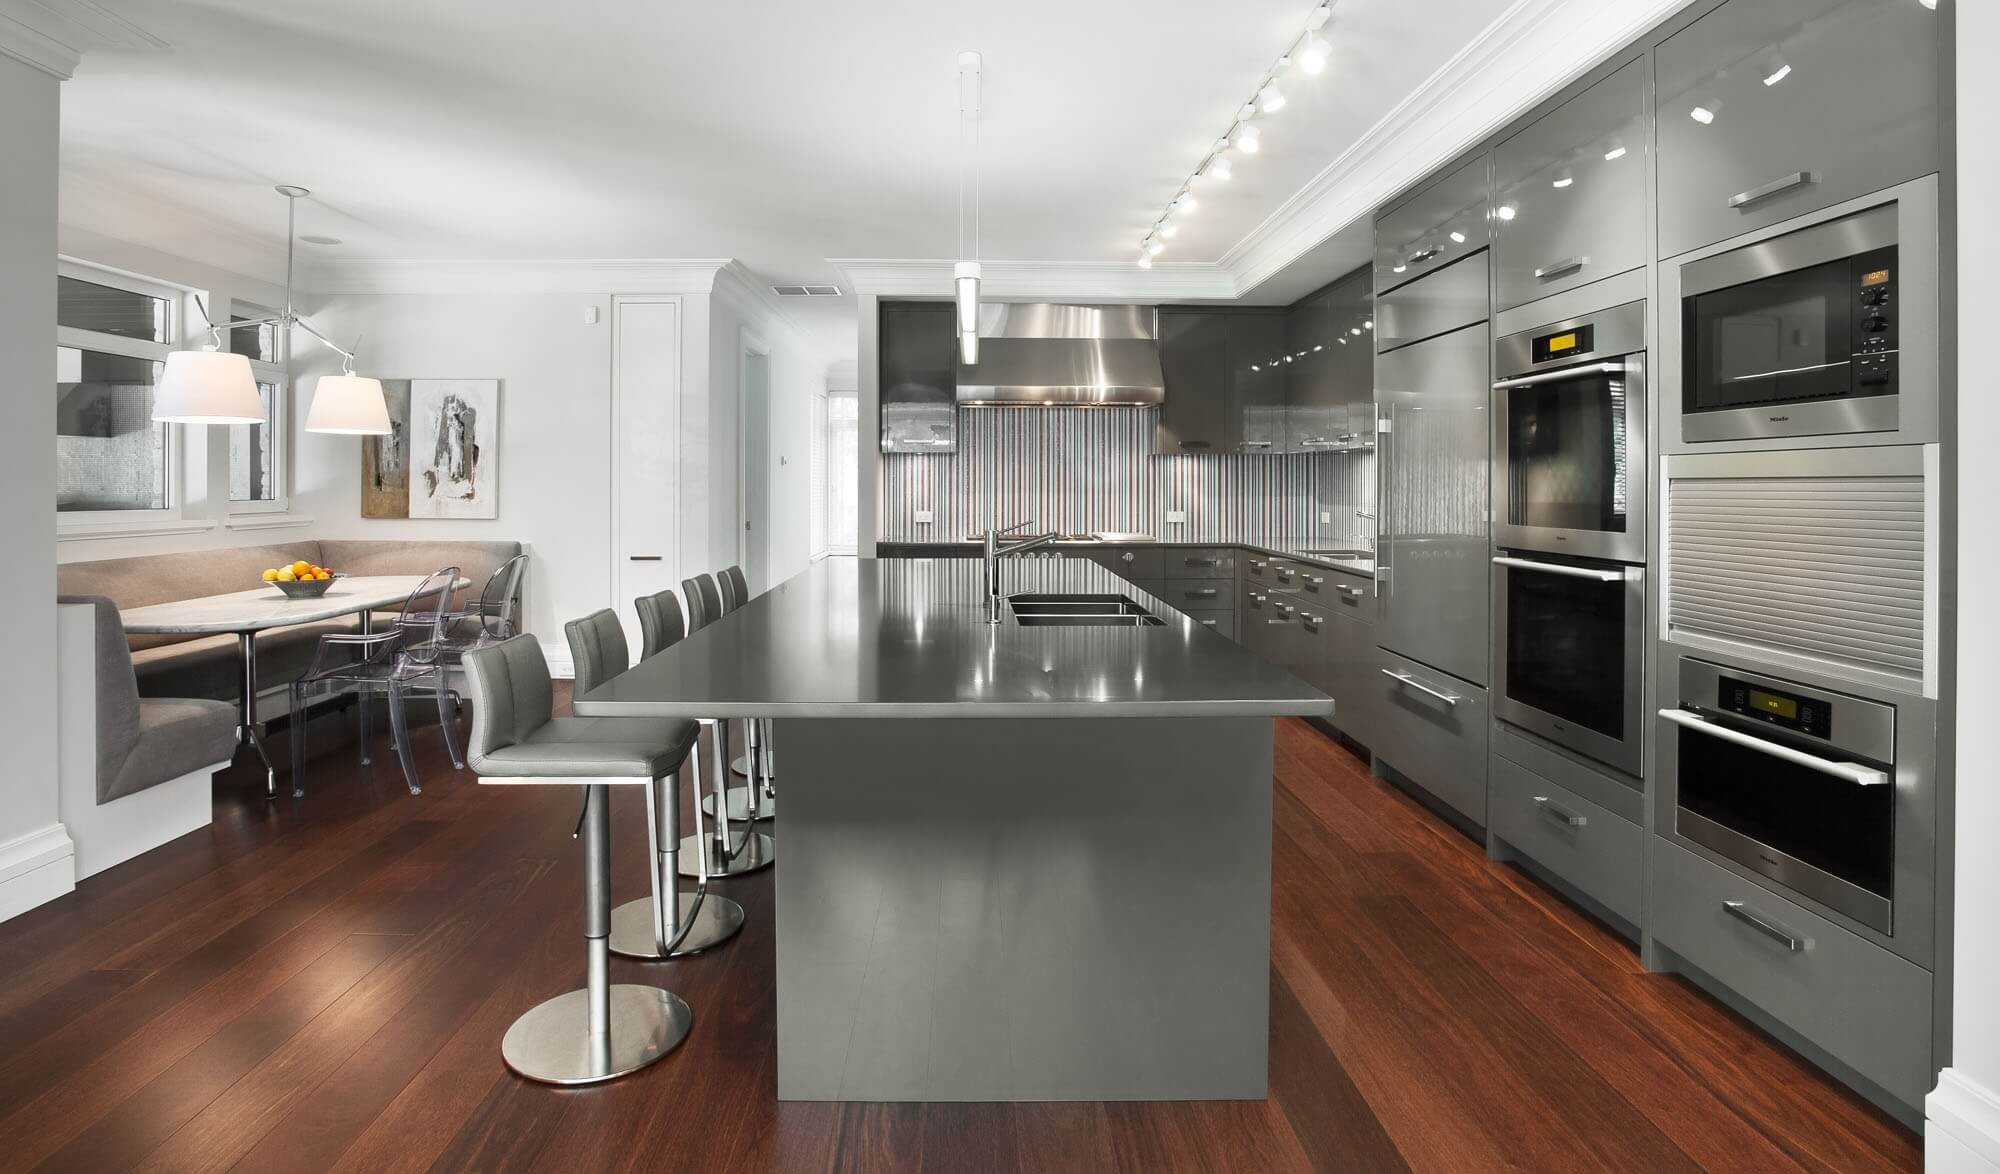 Just like the bowl of fruits, contemporary kitchen bar stools can add a pop of color in a crisp white, sleek black or all–metallic accents kitchen. The stainless steel stool stands match other appliances to provide simple yet elegant look